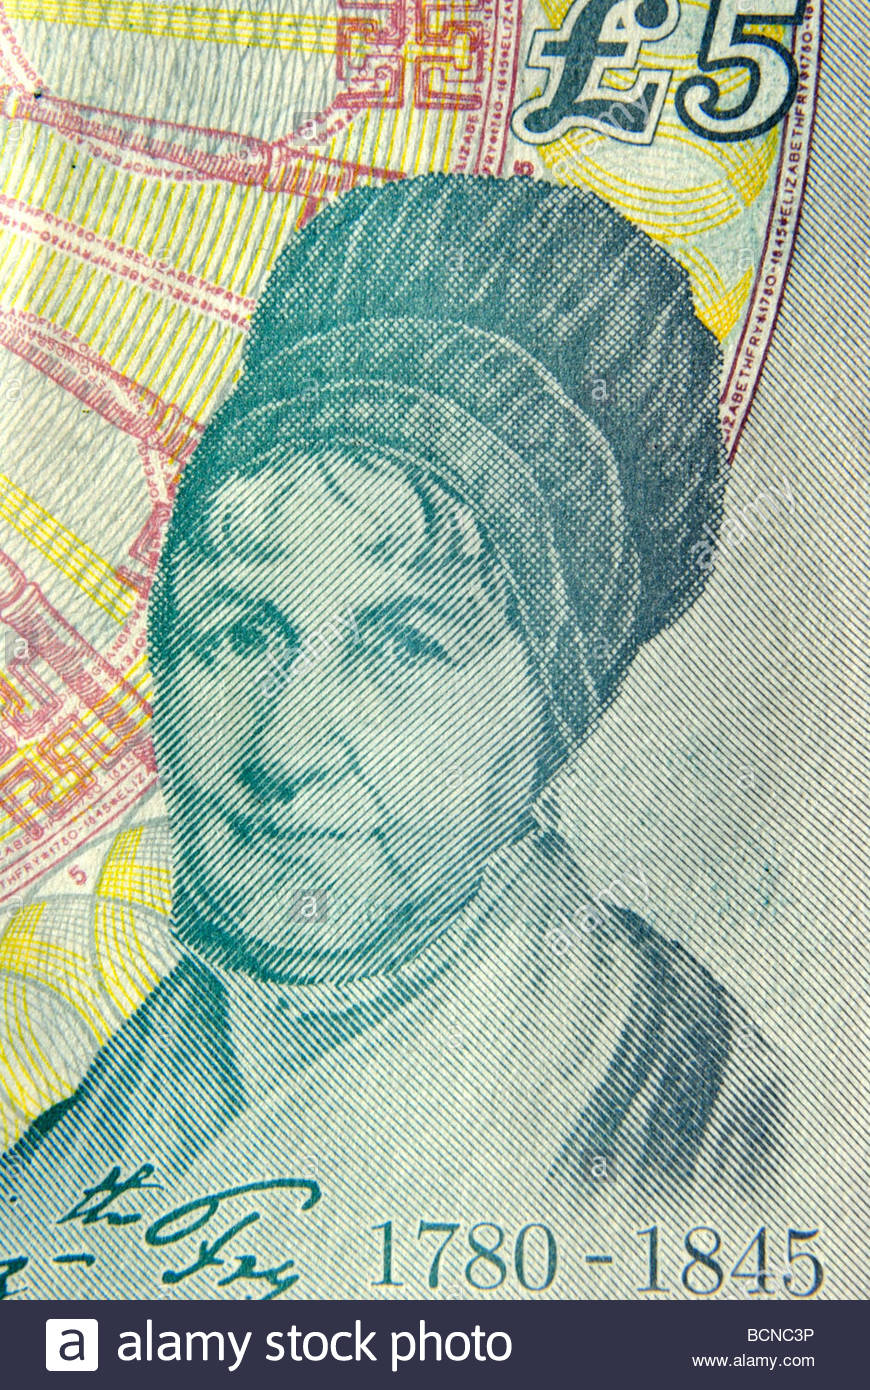 English prison and social reformer Elizabeth Fry depicted on a Five pound note. - Stock Image